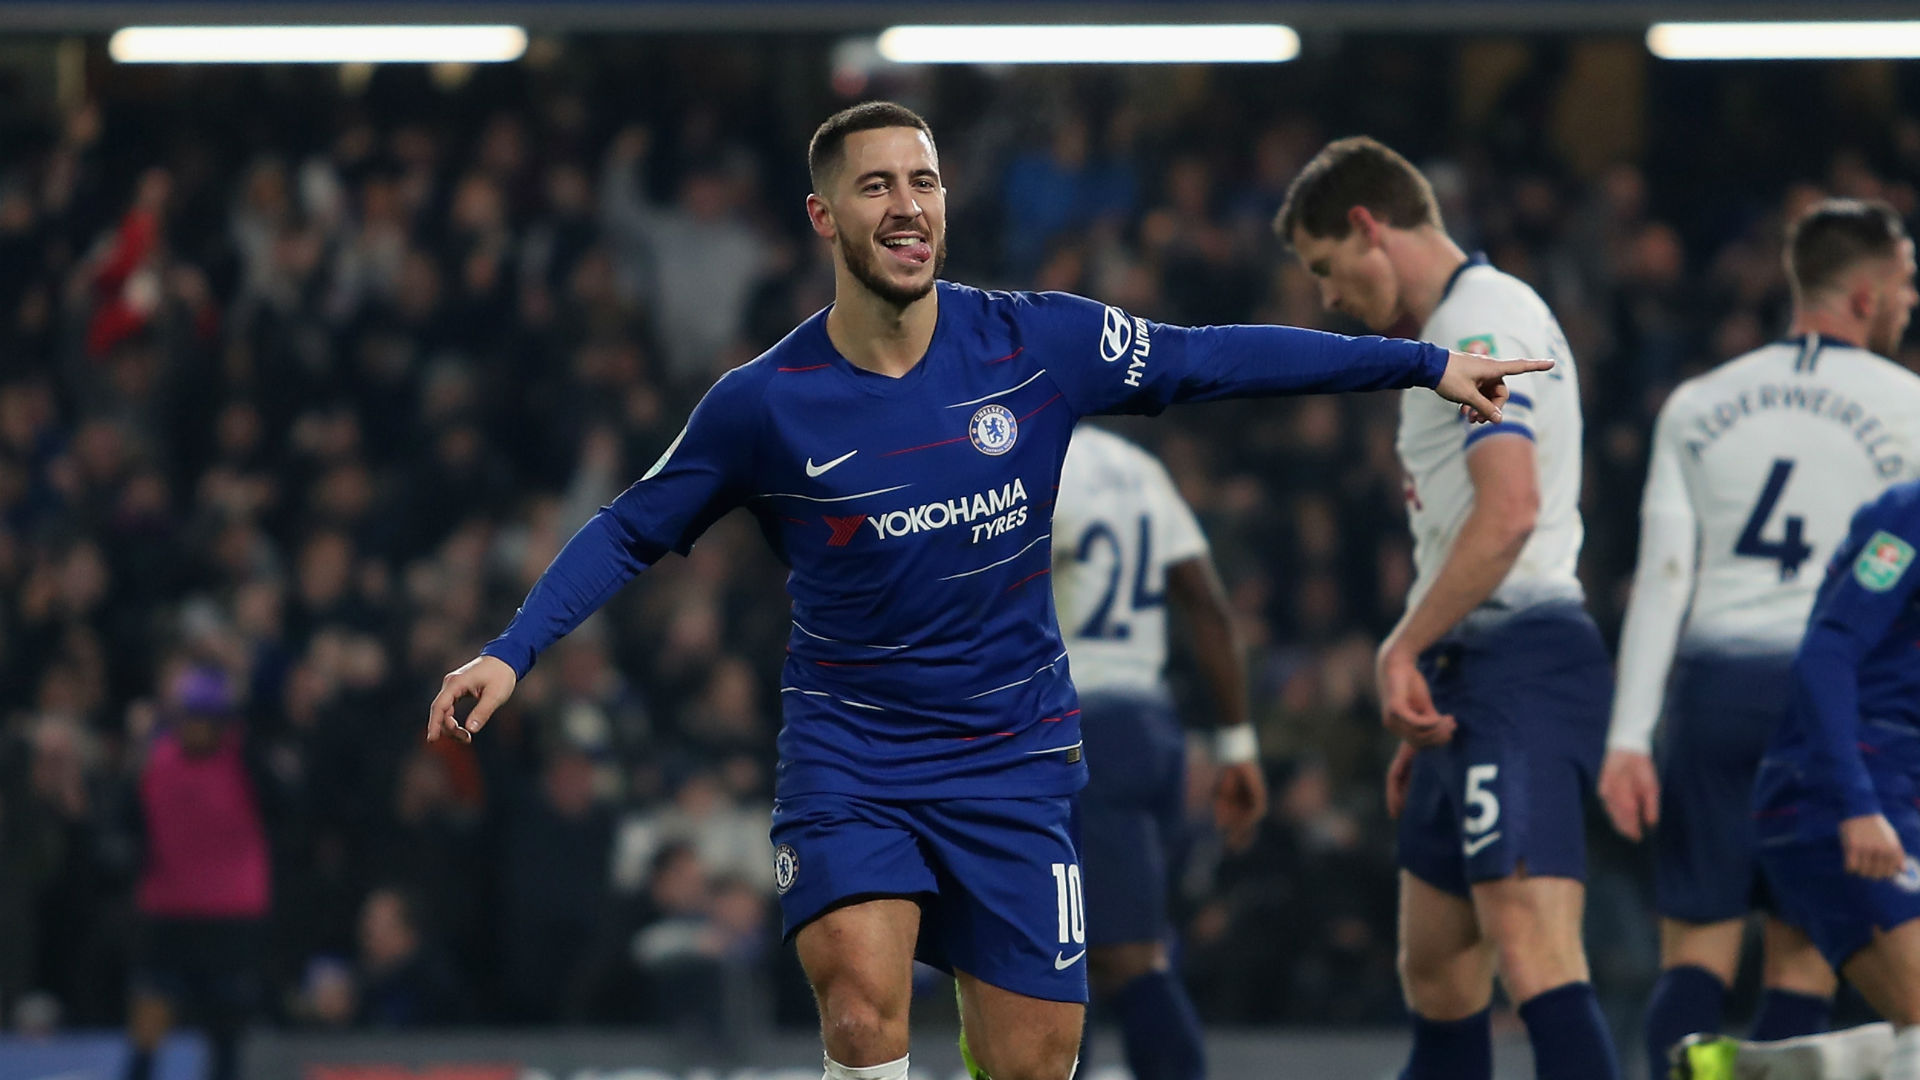 Maurizio Sarri says Chelsea win can help players find 'enthusiasm'